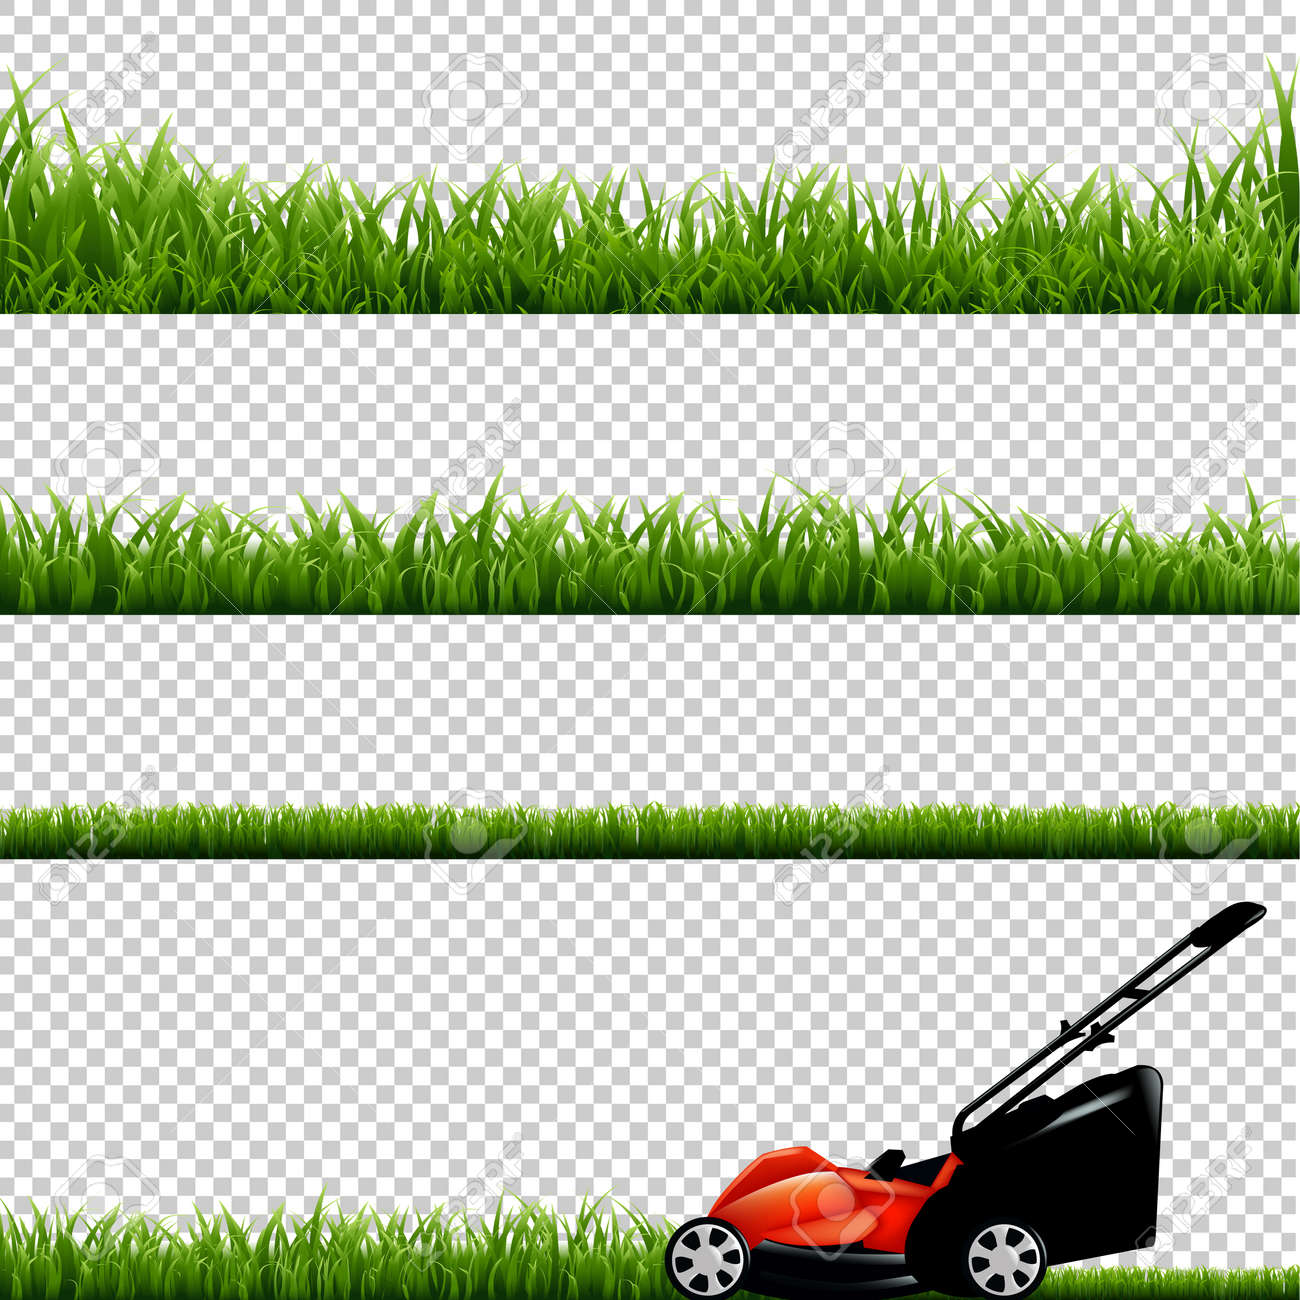 Lawnmower With Green Grass, Isolated on Transparent Background, With Gradient Mesh, Vector Illustration - 56875700